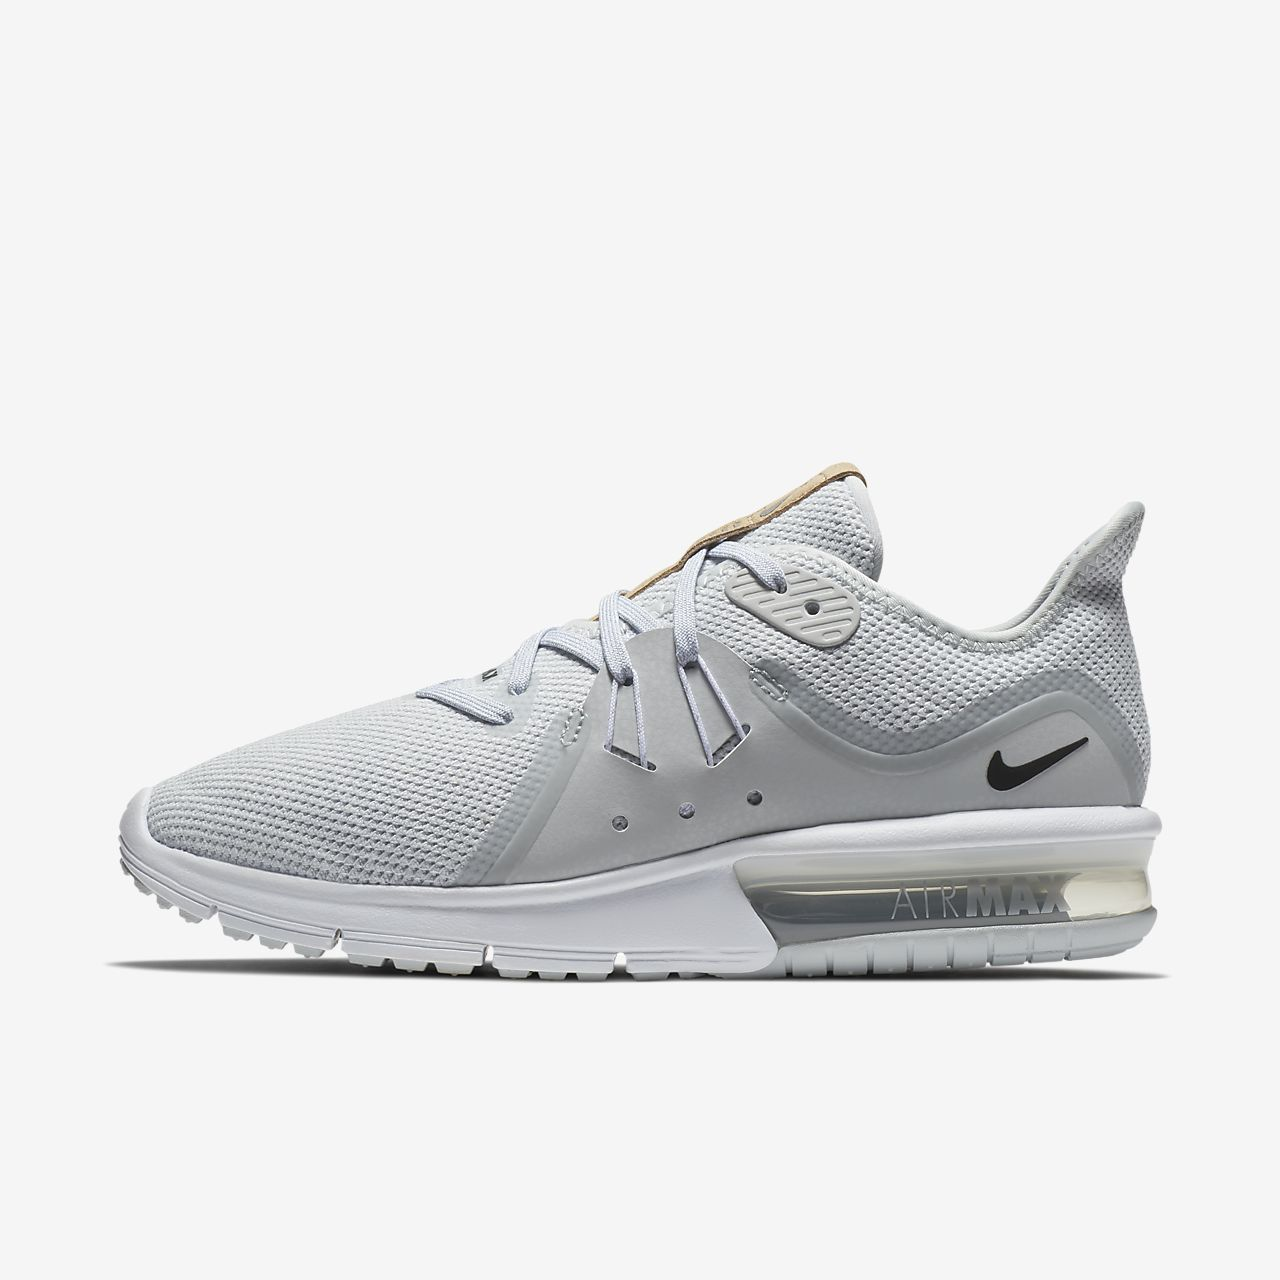 c955c37c2 Nike Air Max Sequent 3 Women's Shoe. Nike.com